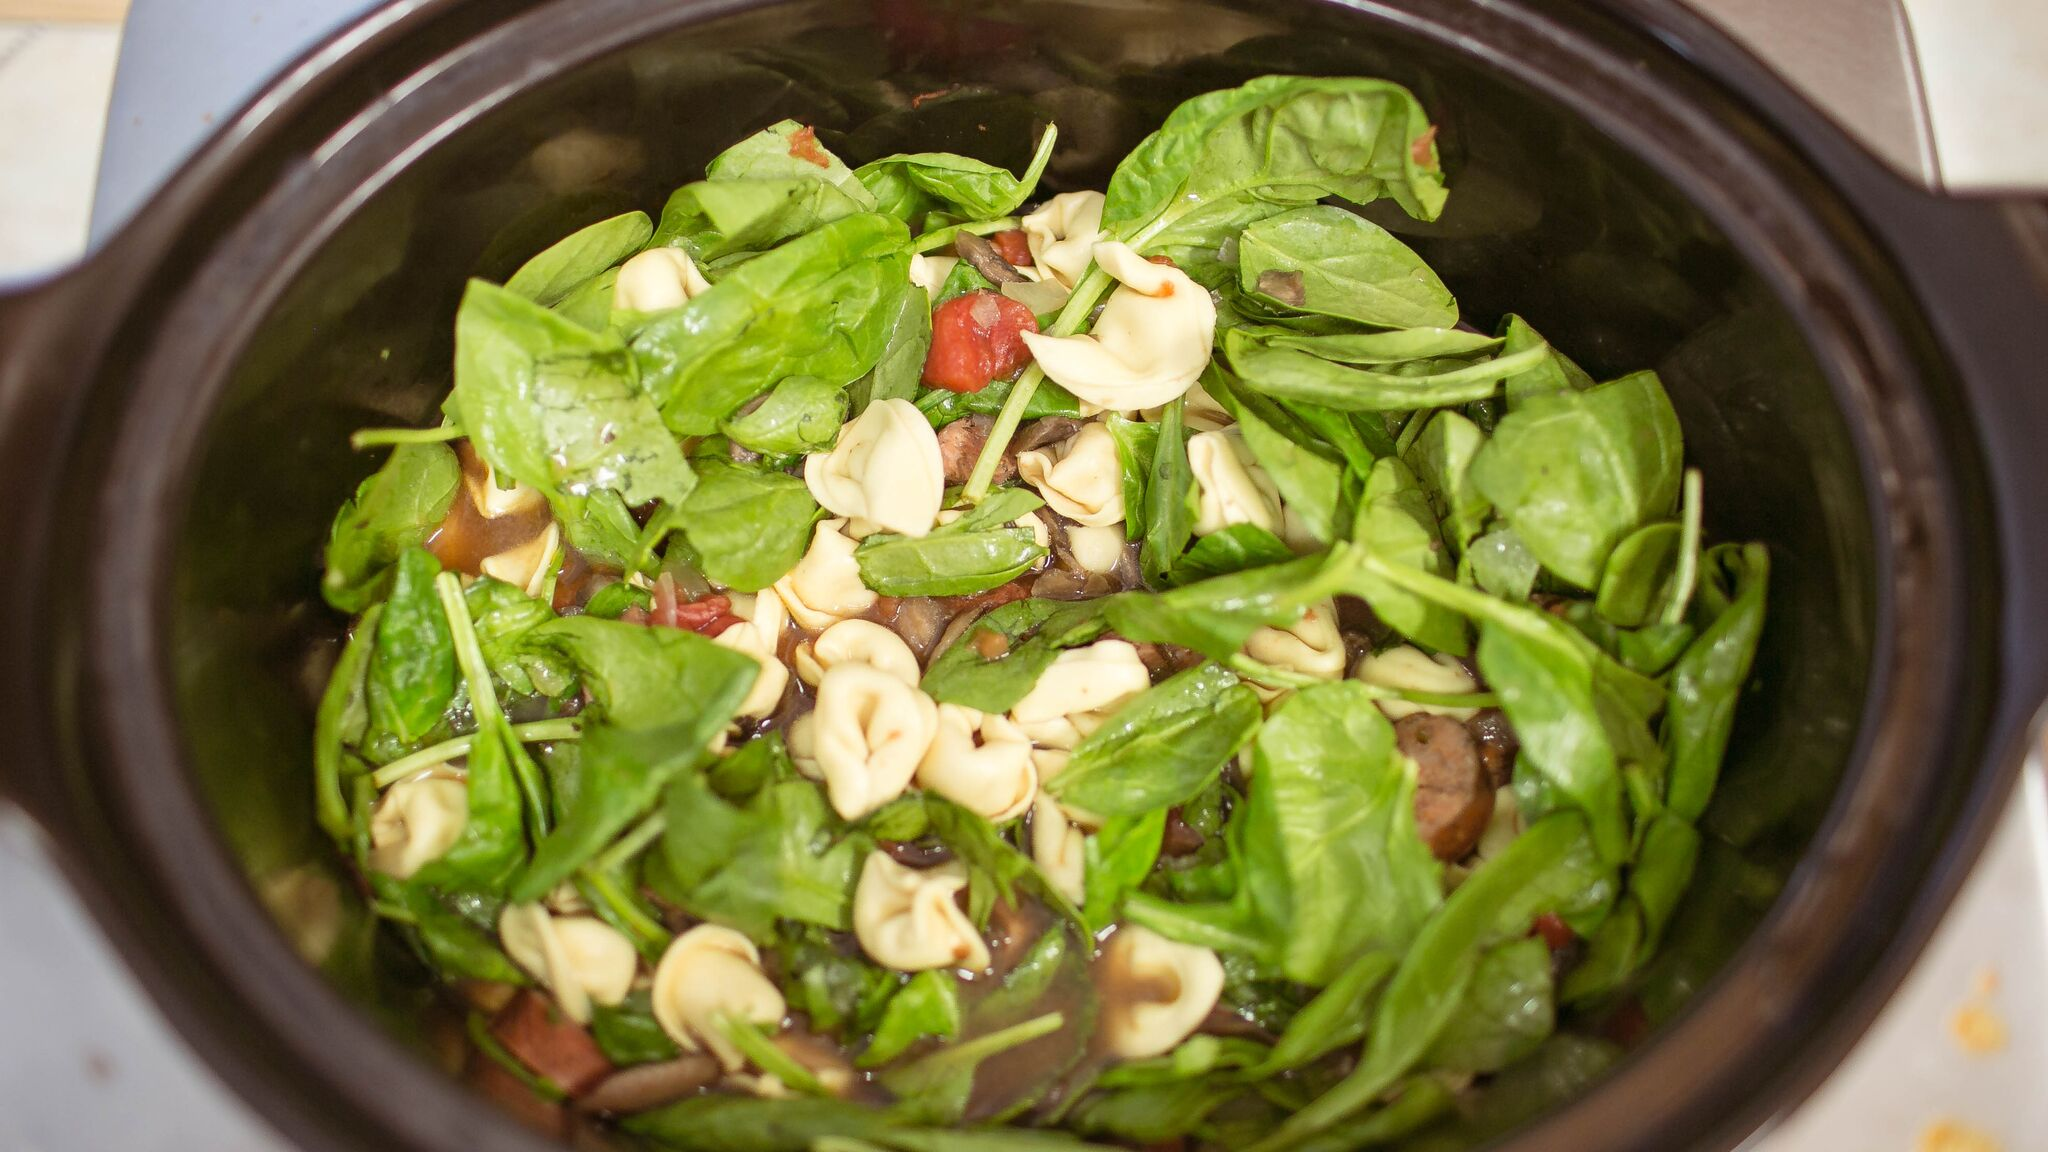 Once you are ready to eat; add package of tortellini directly into crock pot with fresh spinach and stir.